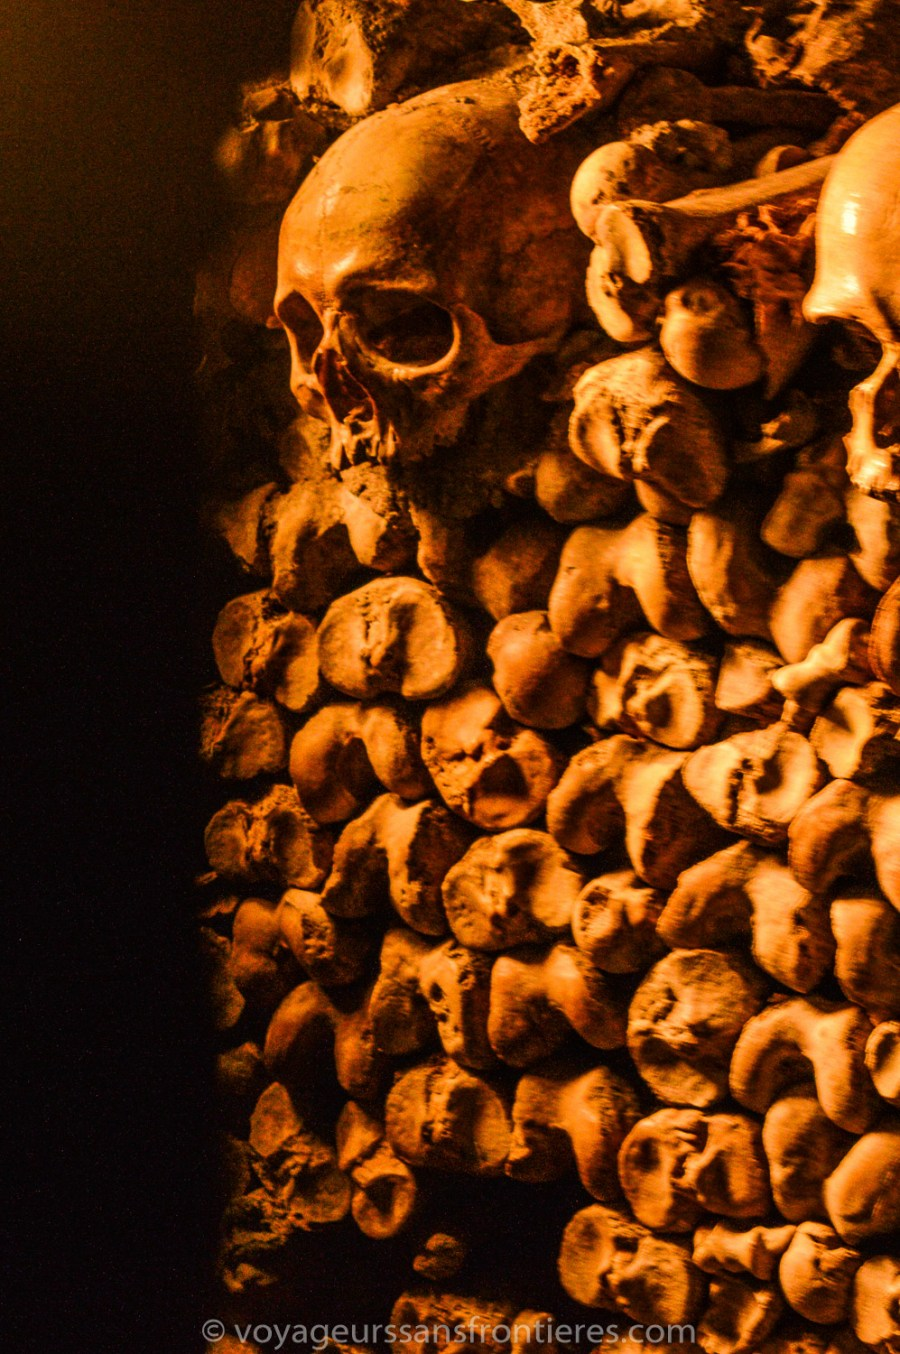 Crâne et ossements - Catacombes de Paris, France